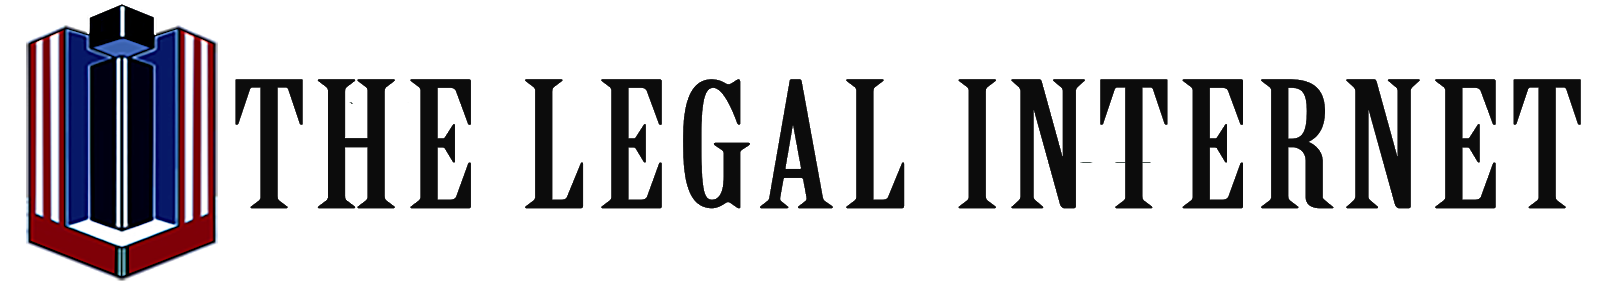 TheLegalInternet.com | Best Online NEWS/INFO on what is and isn't LEGAL and ENTERTAINING